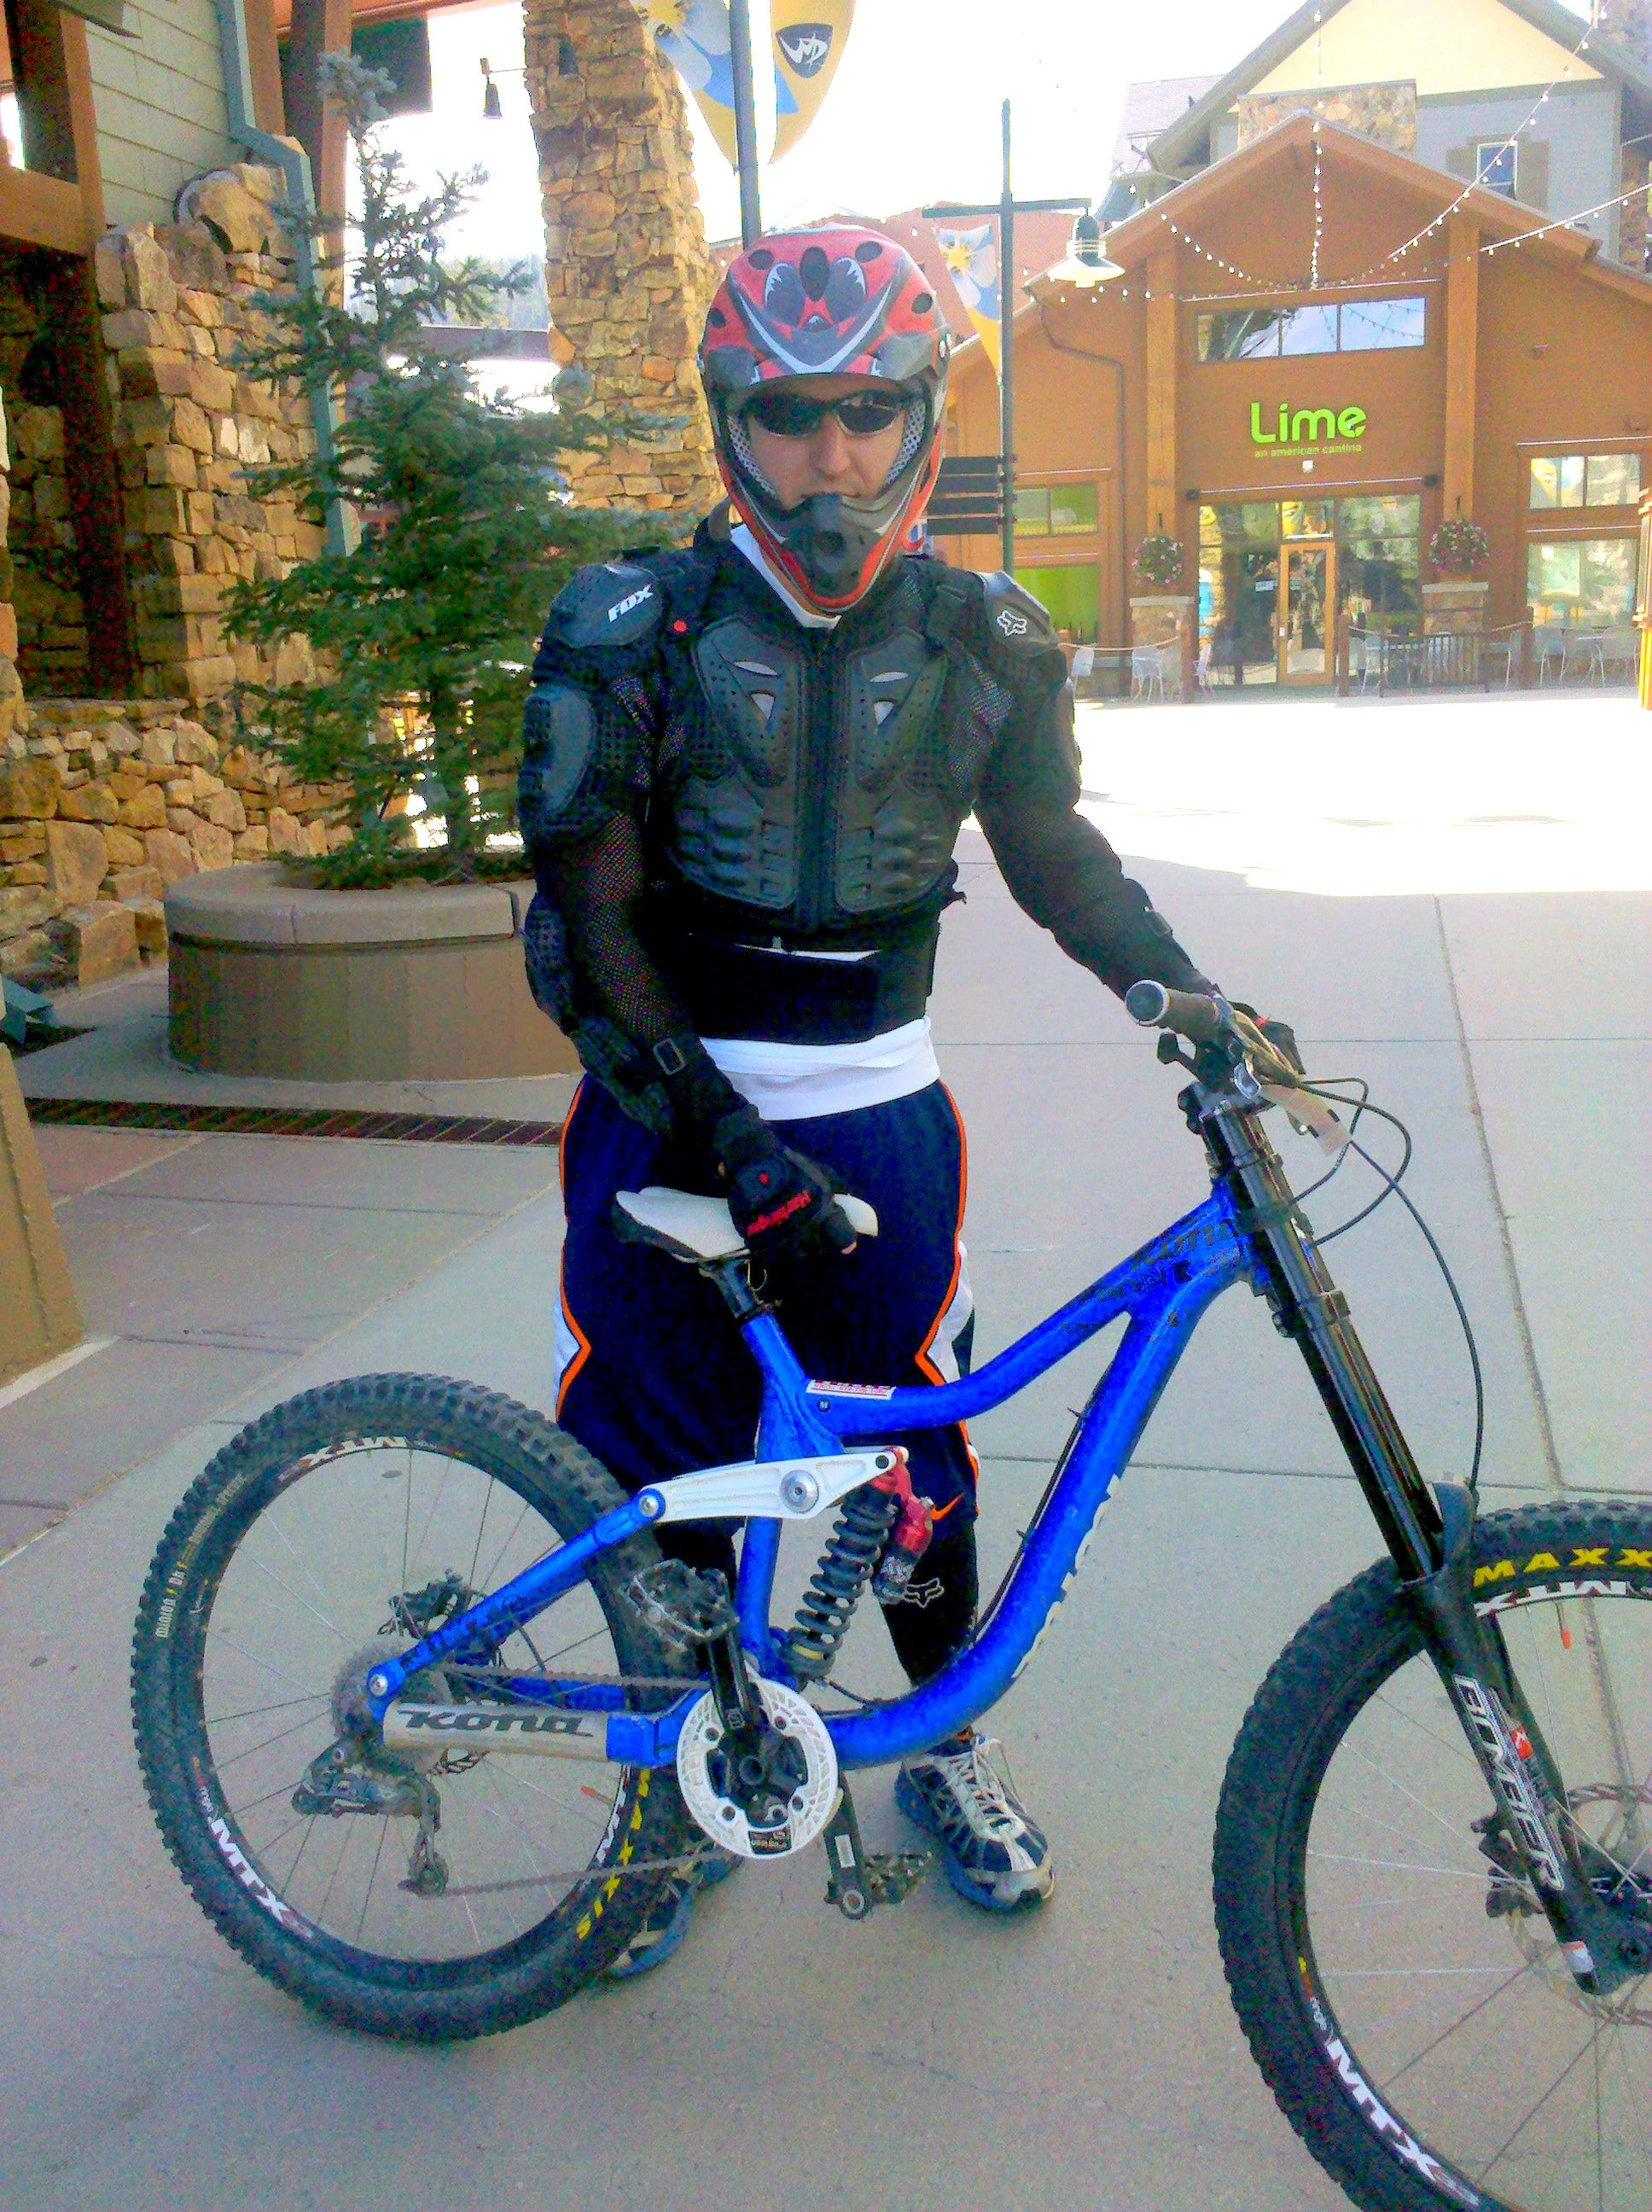 Steven Riss is armored up for a day of Downhill mountain biking at Winter Park.